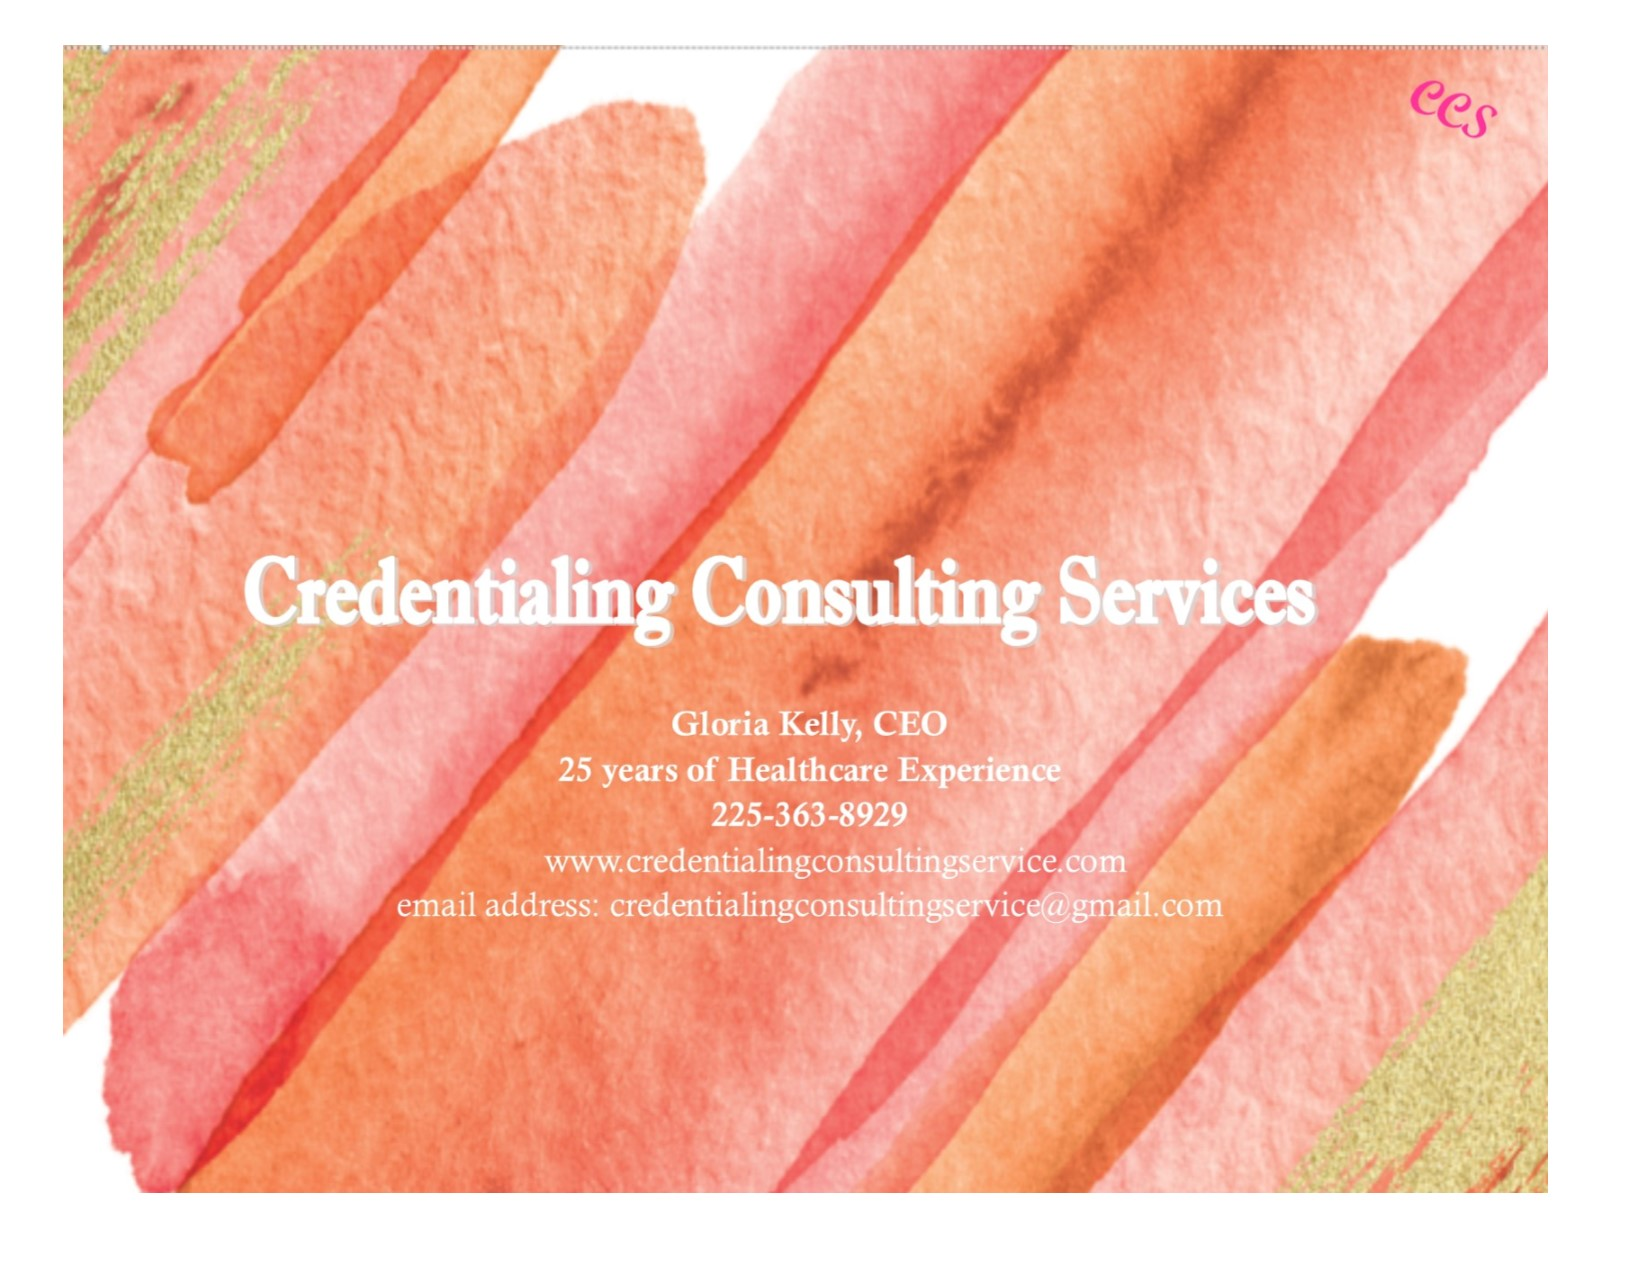 Credentialing Consulting Service